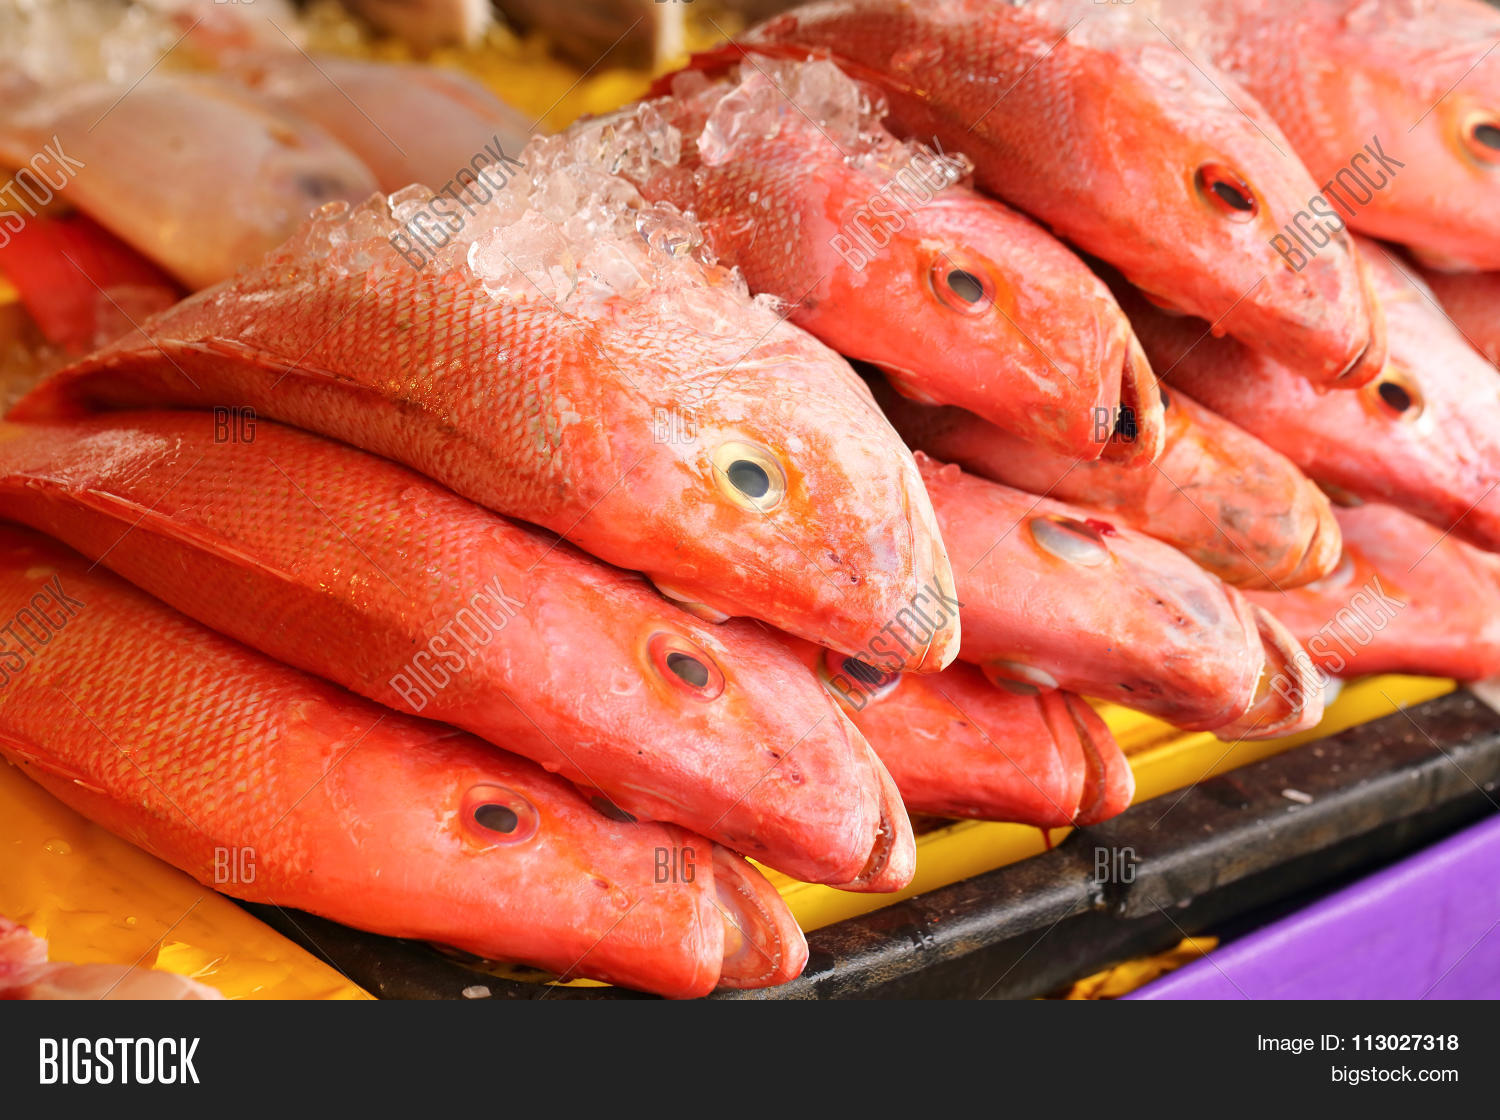 Red snapper fish image photo bigstock for Red snapper fish